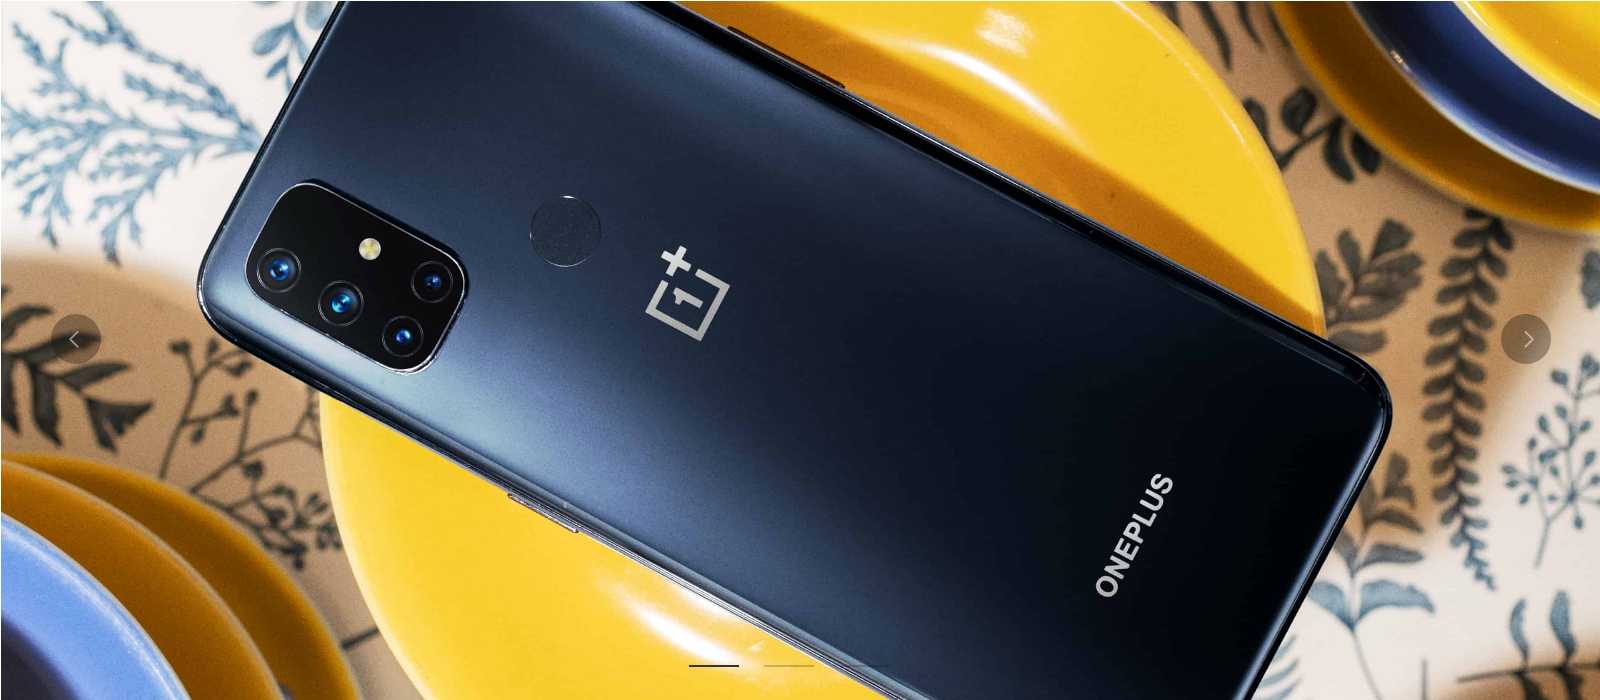 OnePlus is now touted to launch the Nord N10 and N100 in India thumbnail